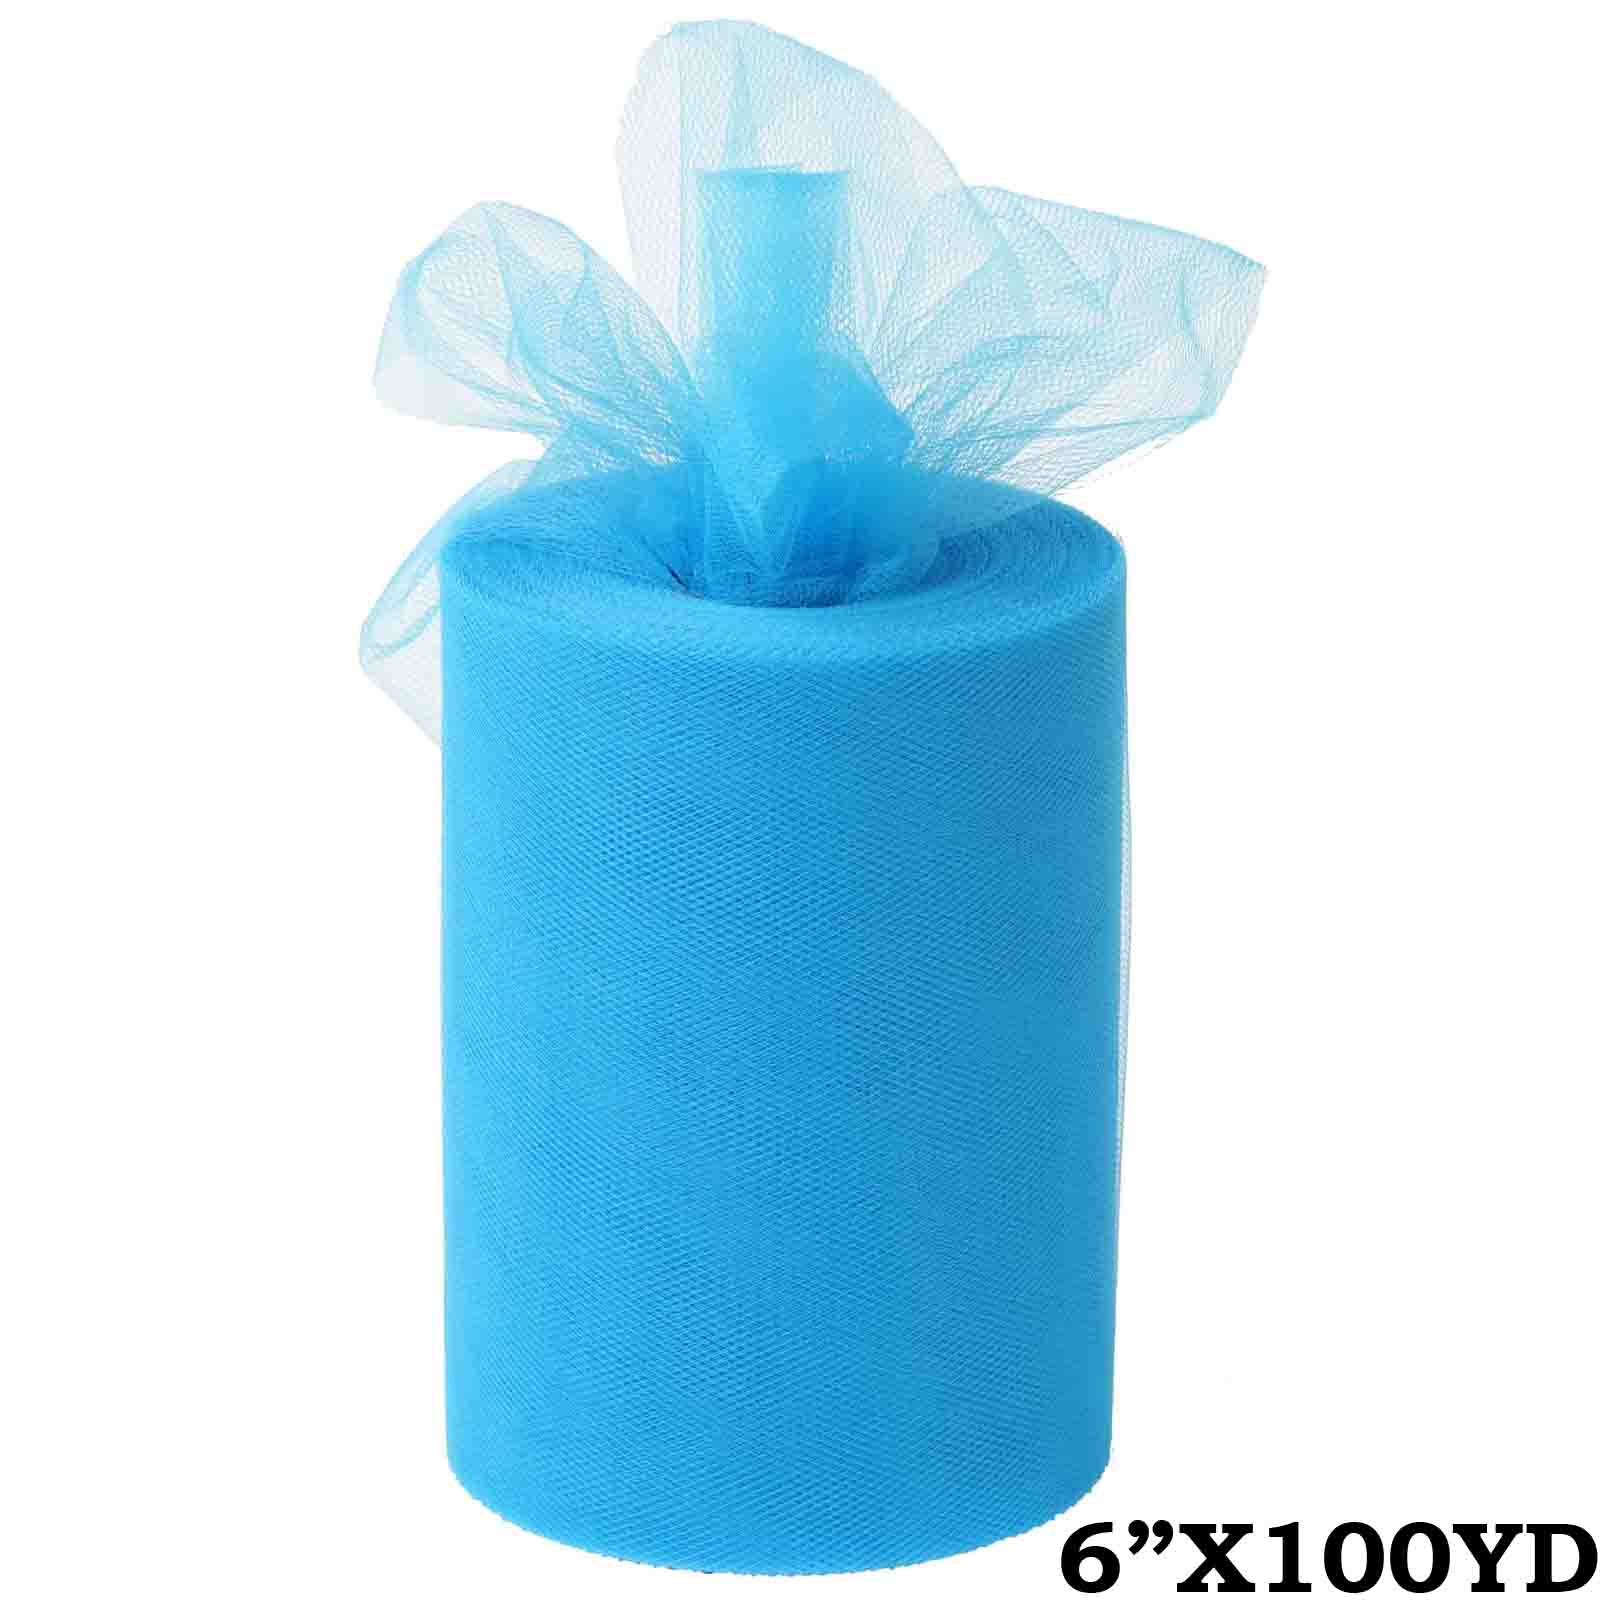 "6"" x 300 feet Wedding Tulle Roll For Crafting Favors Decor - Turquoise"